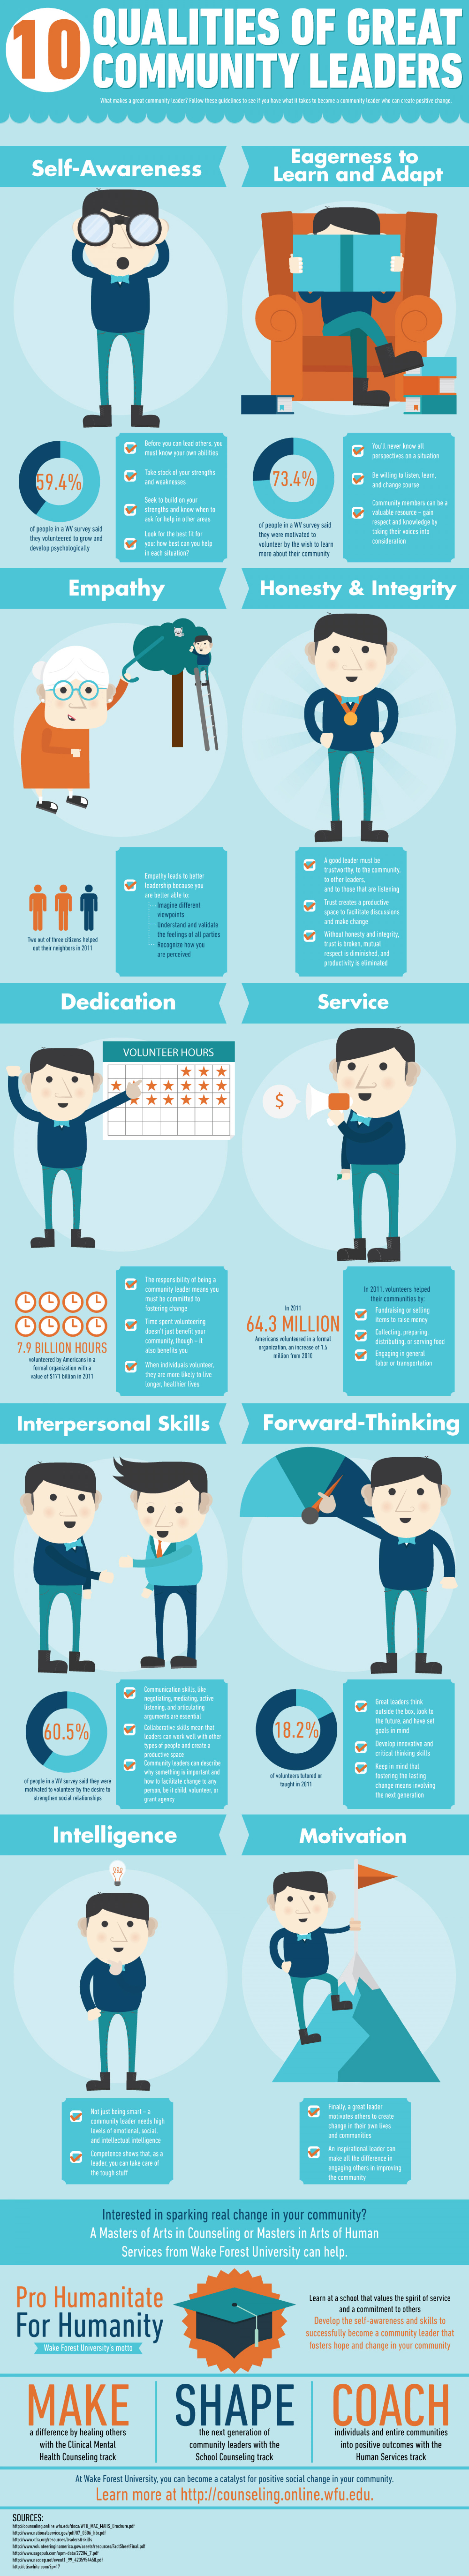 10 Qualities of Great Community Leaders Infographic